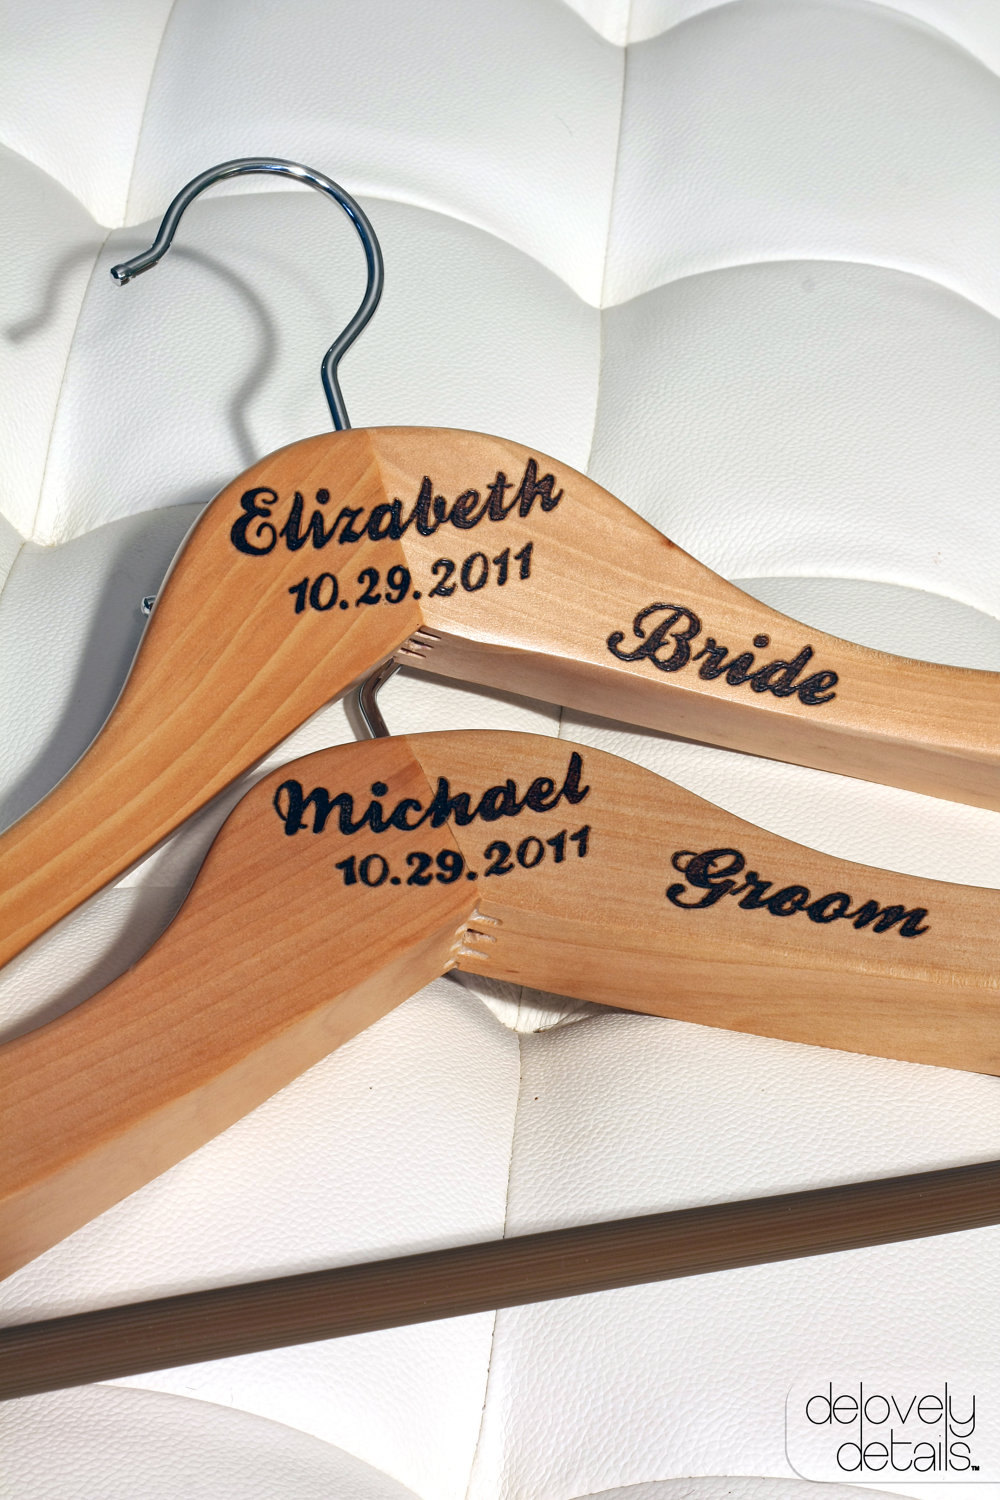 Customized/Personalized Premium Hanger Set For Bride's Wedding Dress & Groom's Tux/Suit - Wooden